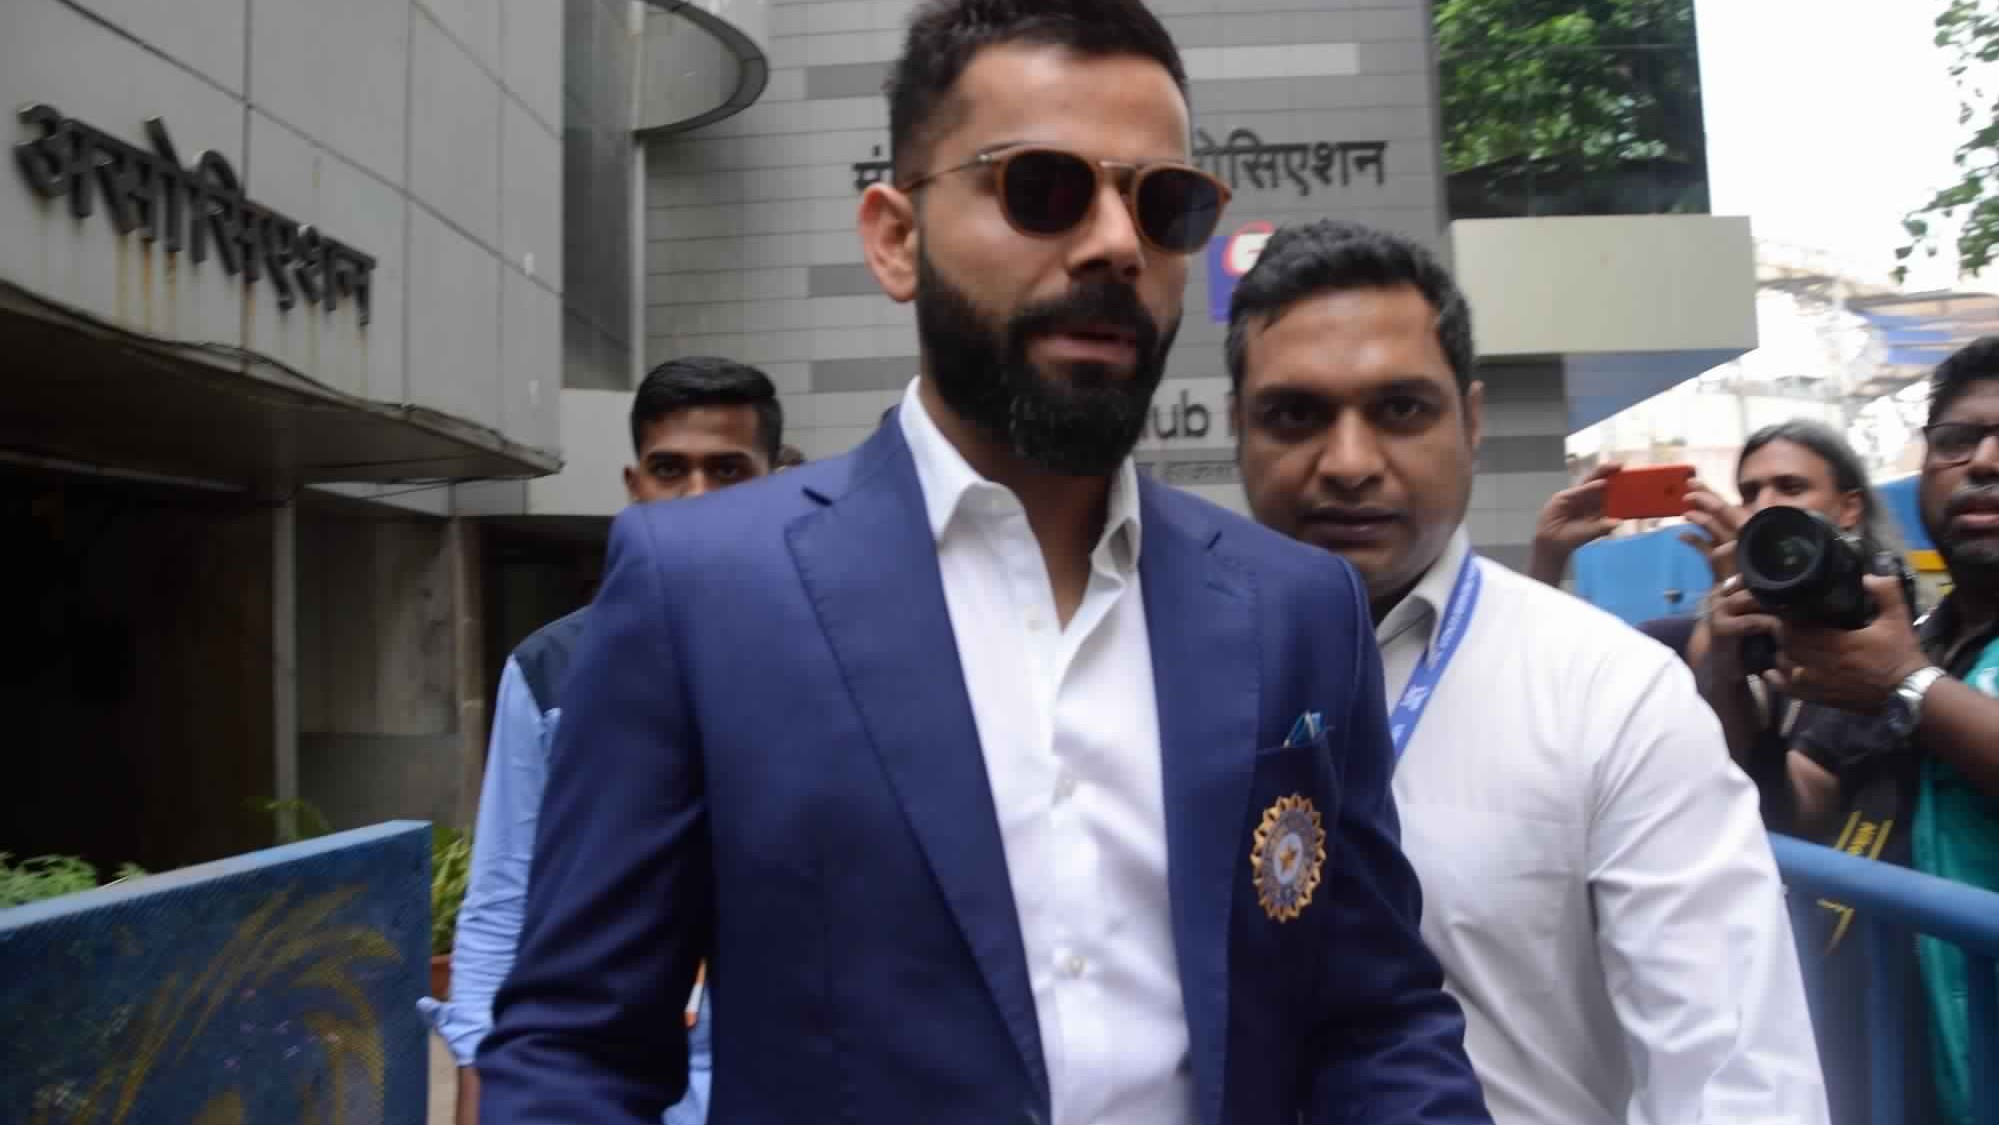 CWC 2019: Indian cricketers get tailored for customized suits for World Cup during IPL